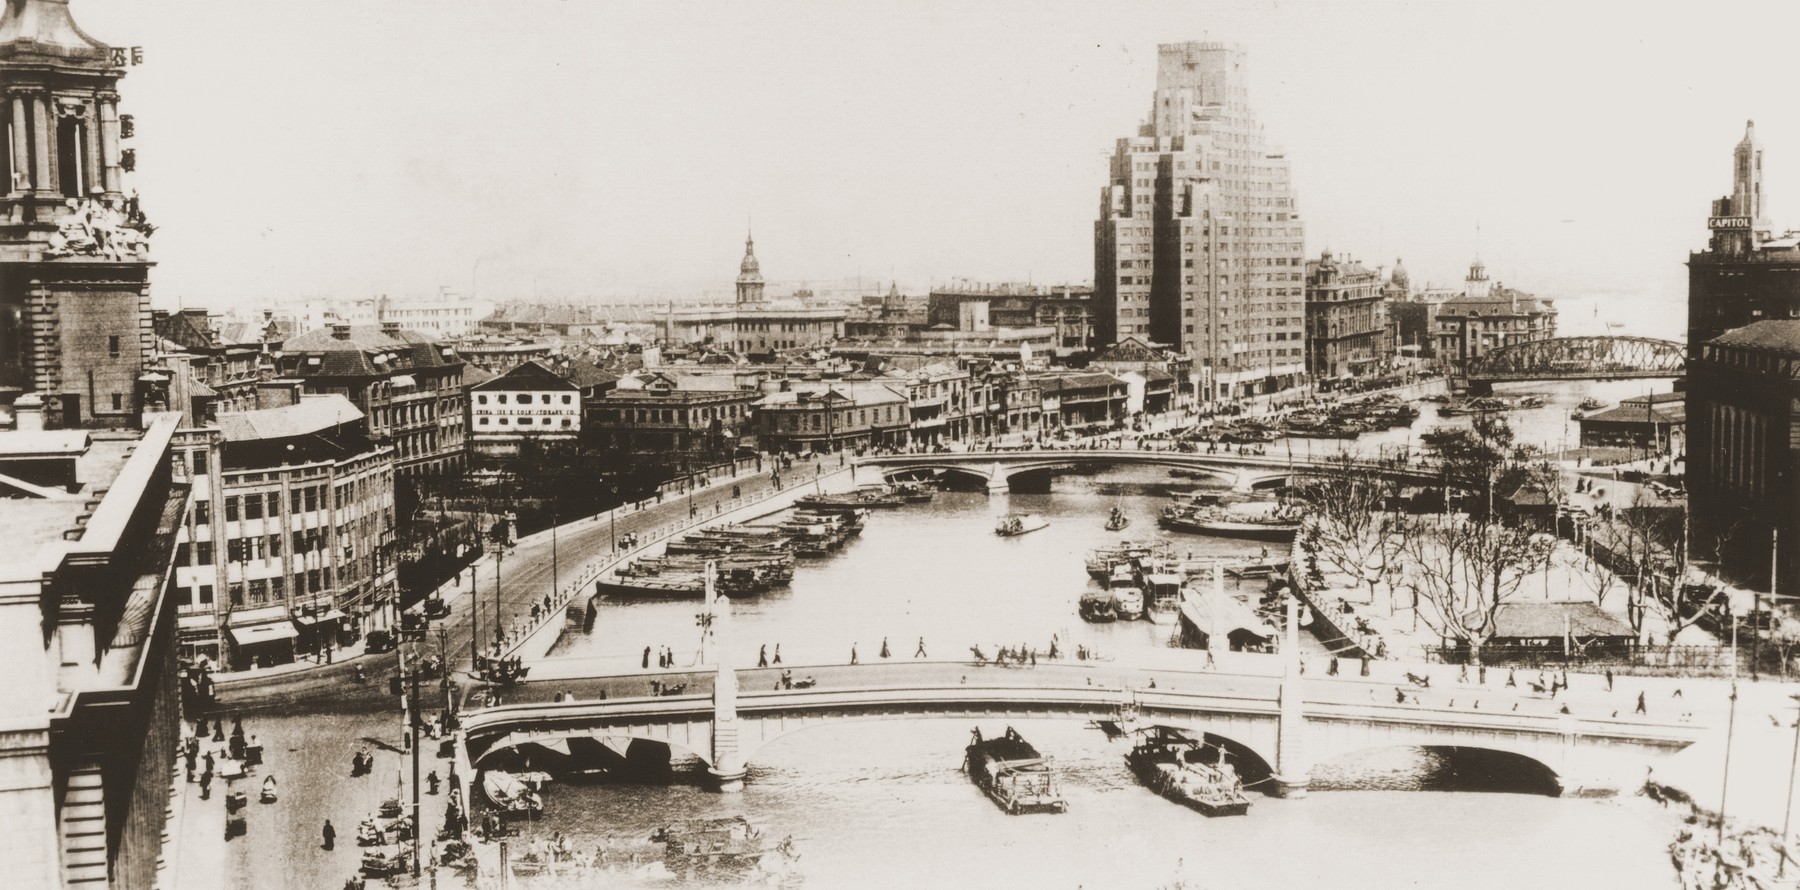 Picture postcard of the Soochow Creek looking towards the Mansions Building on the Bund.